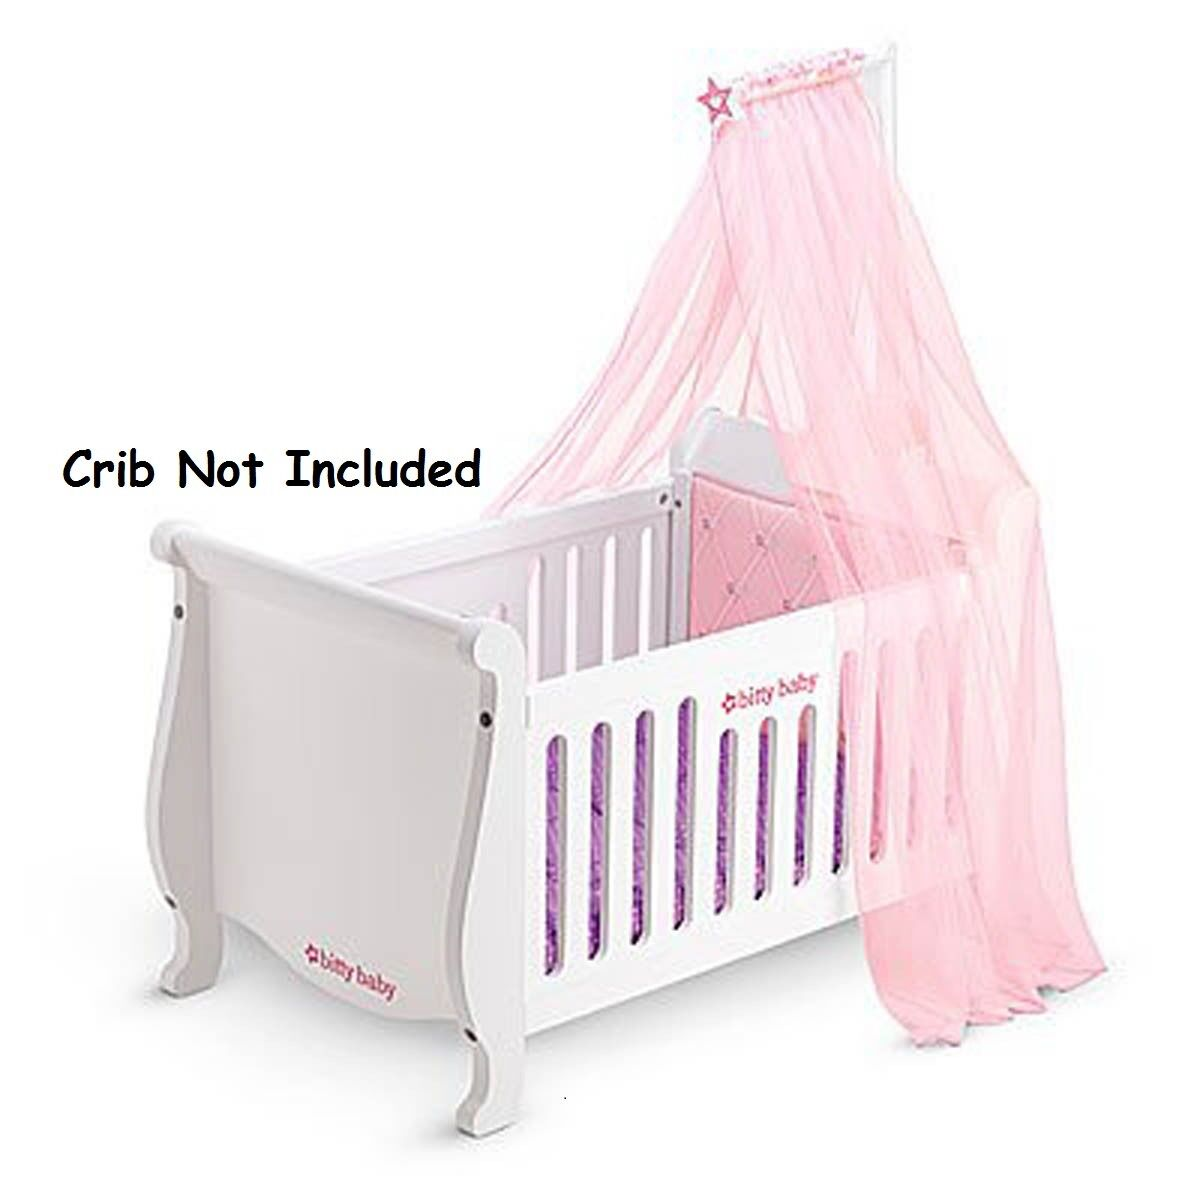 American Girl Bitty Baby Sweet & Soft Canopy Pink NIB Fits on Crib